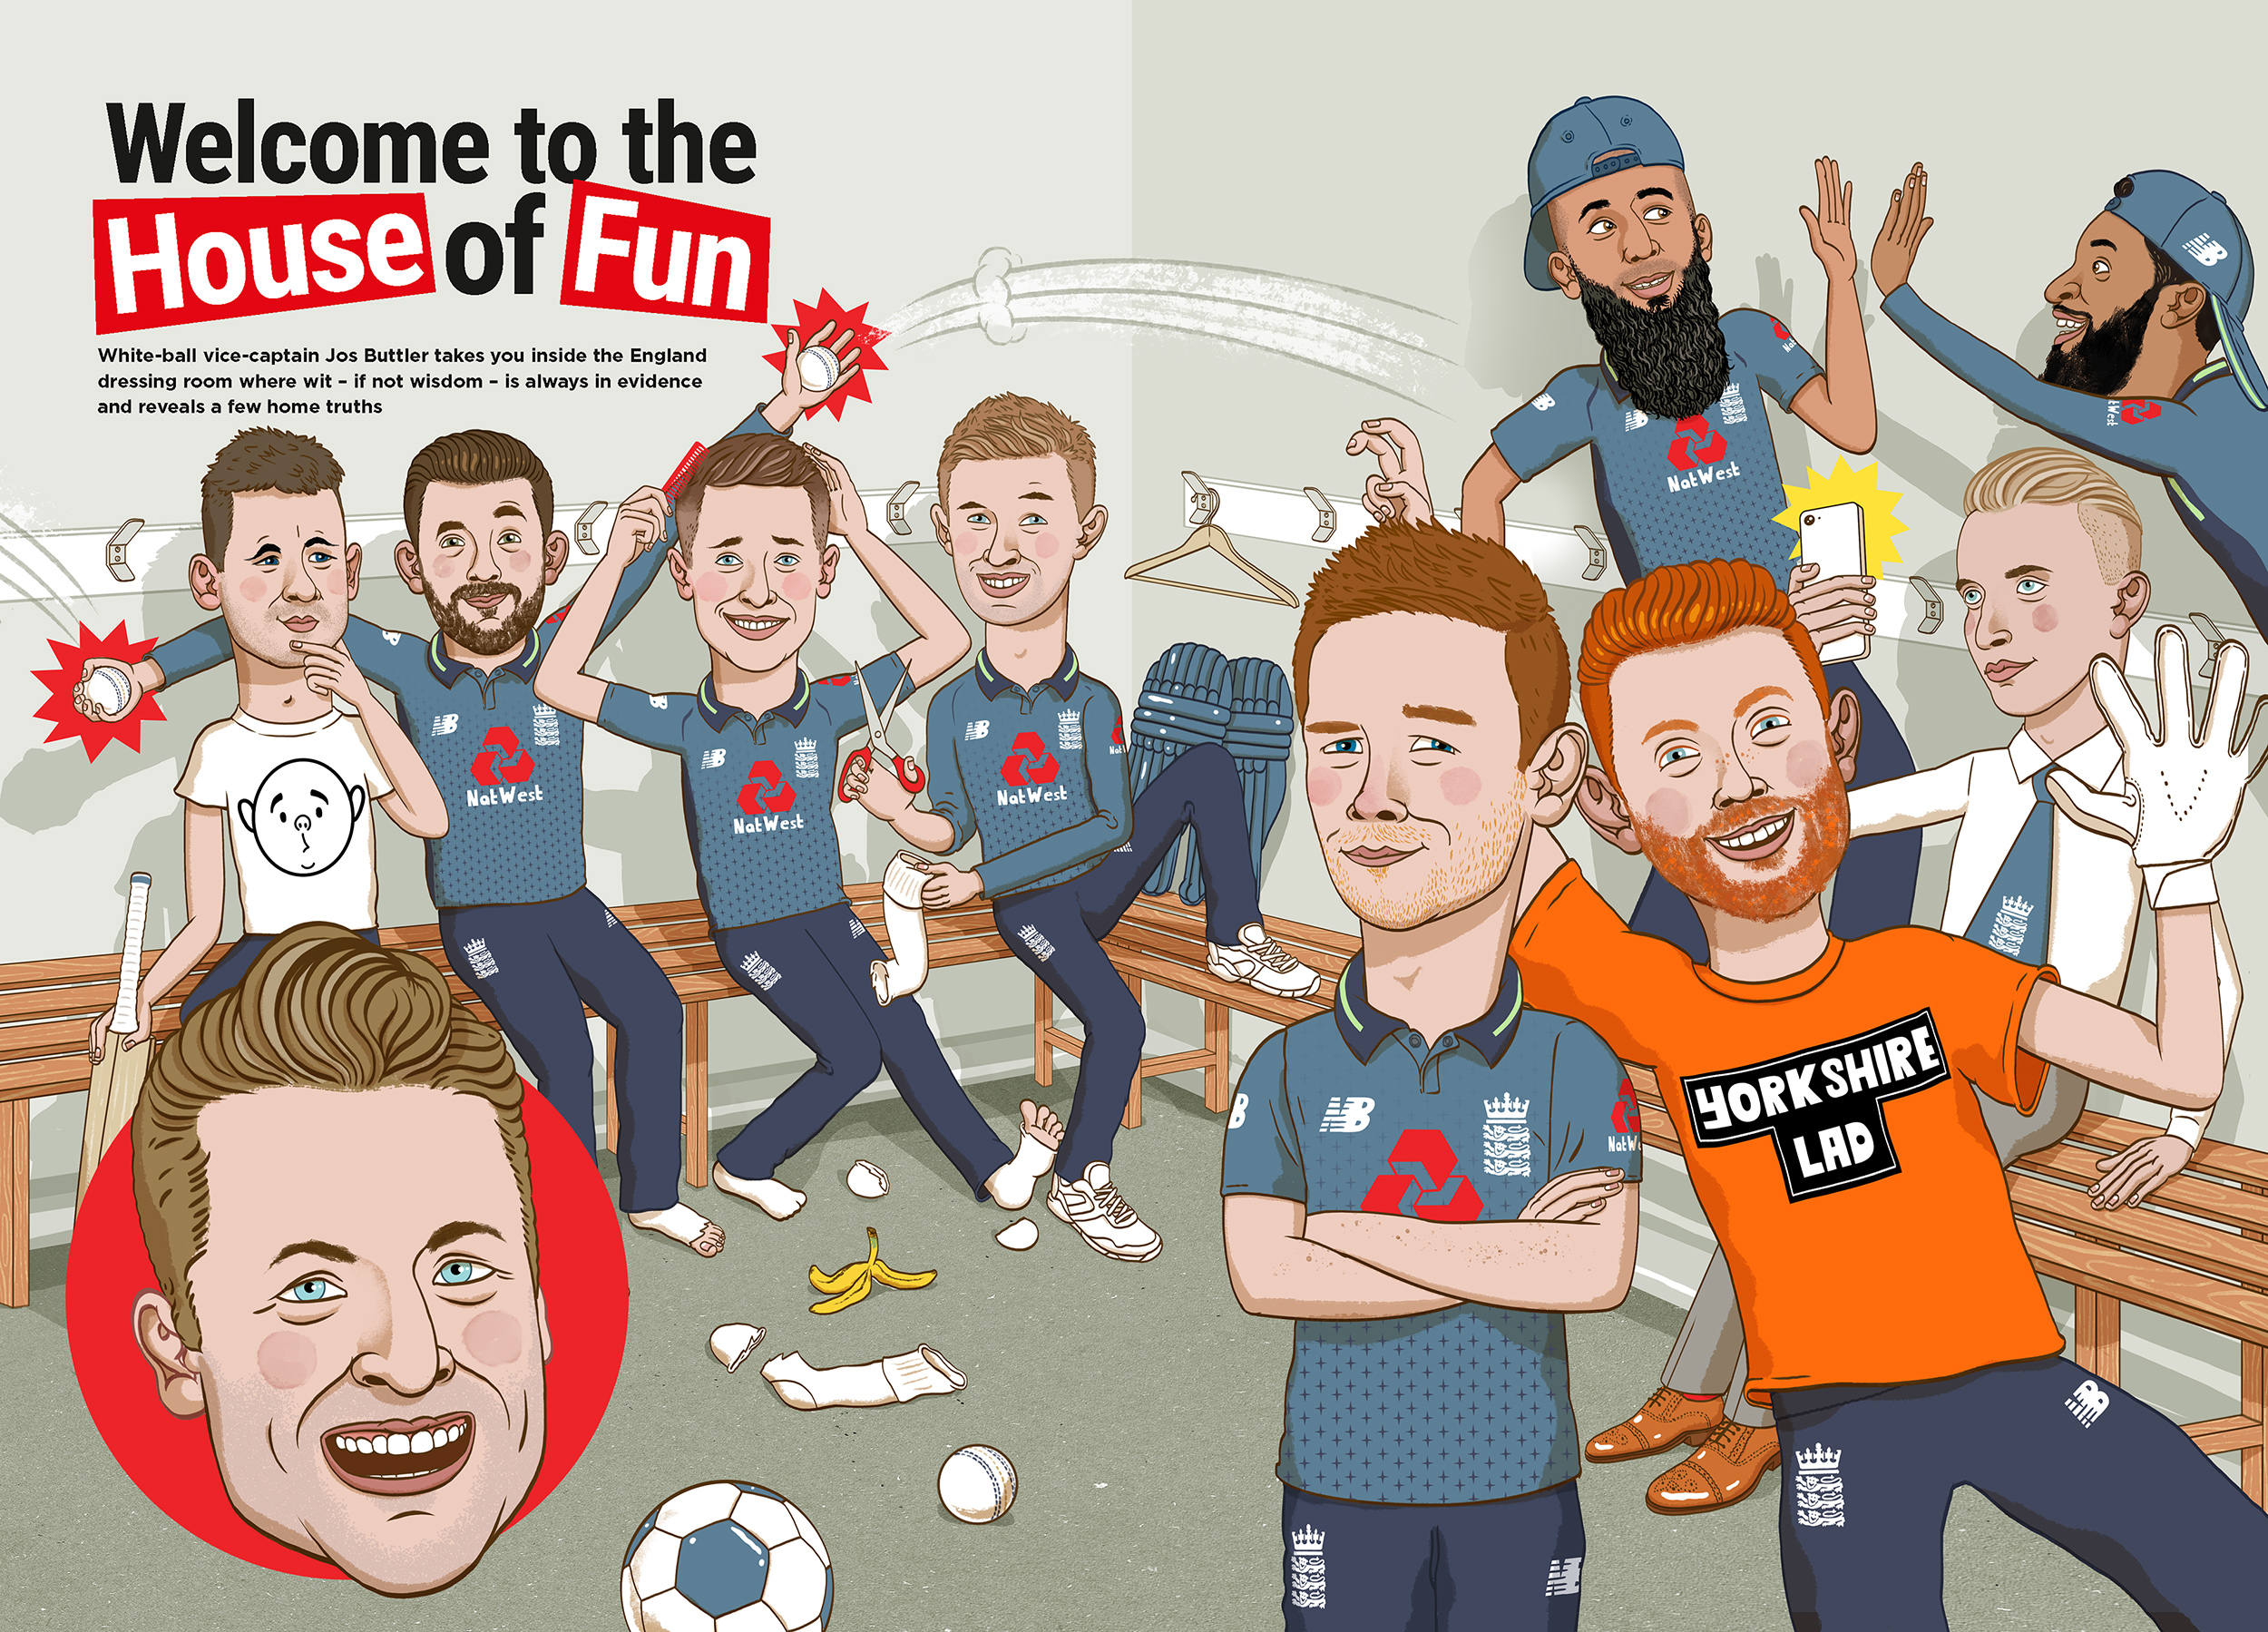 England Cricket Team for the T20 One Day international programmes 2018